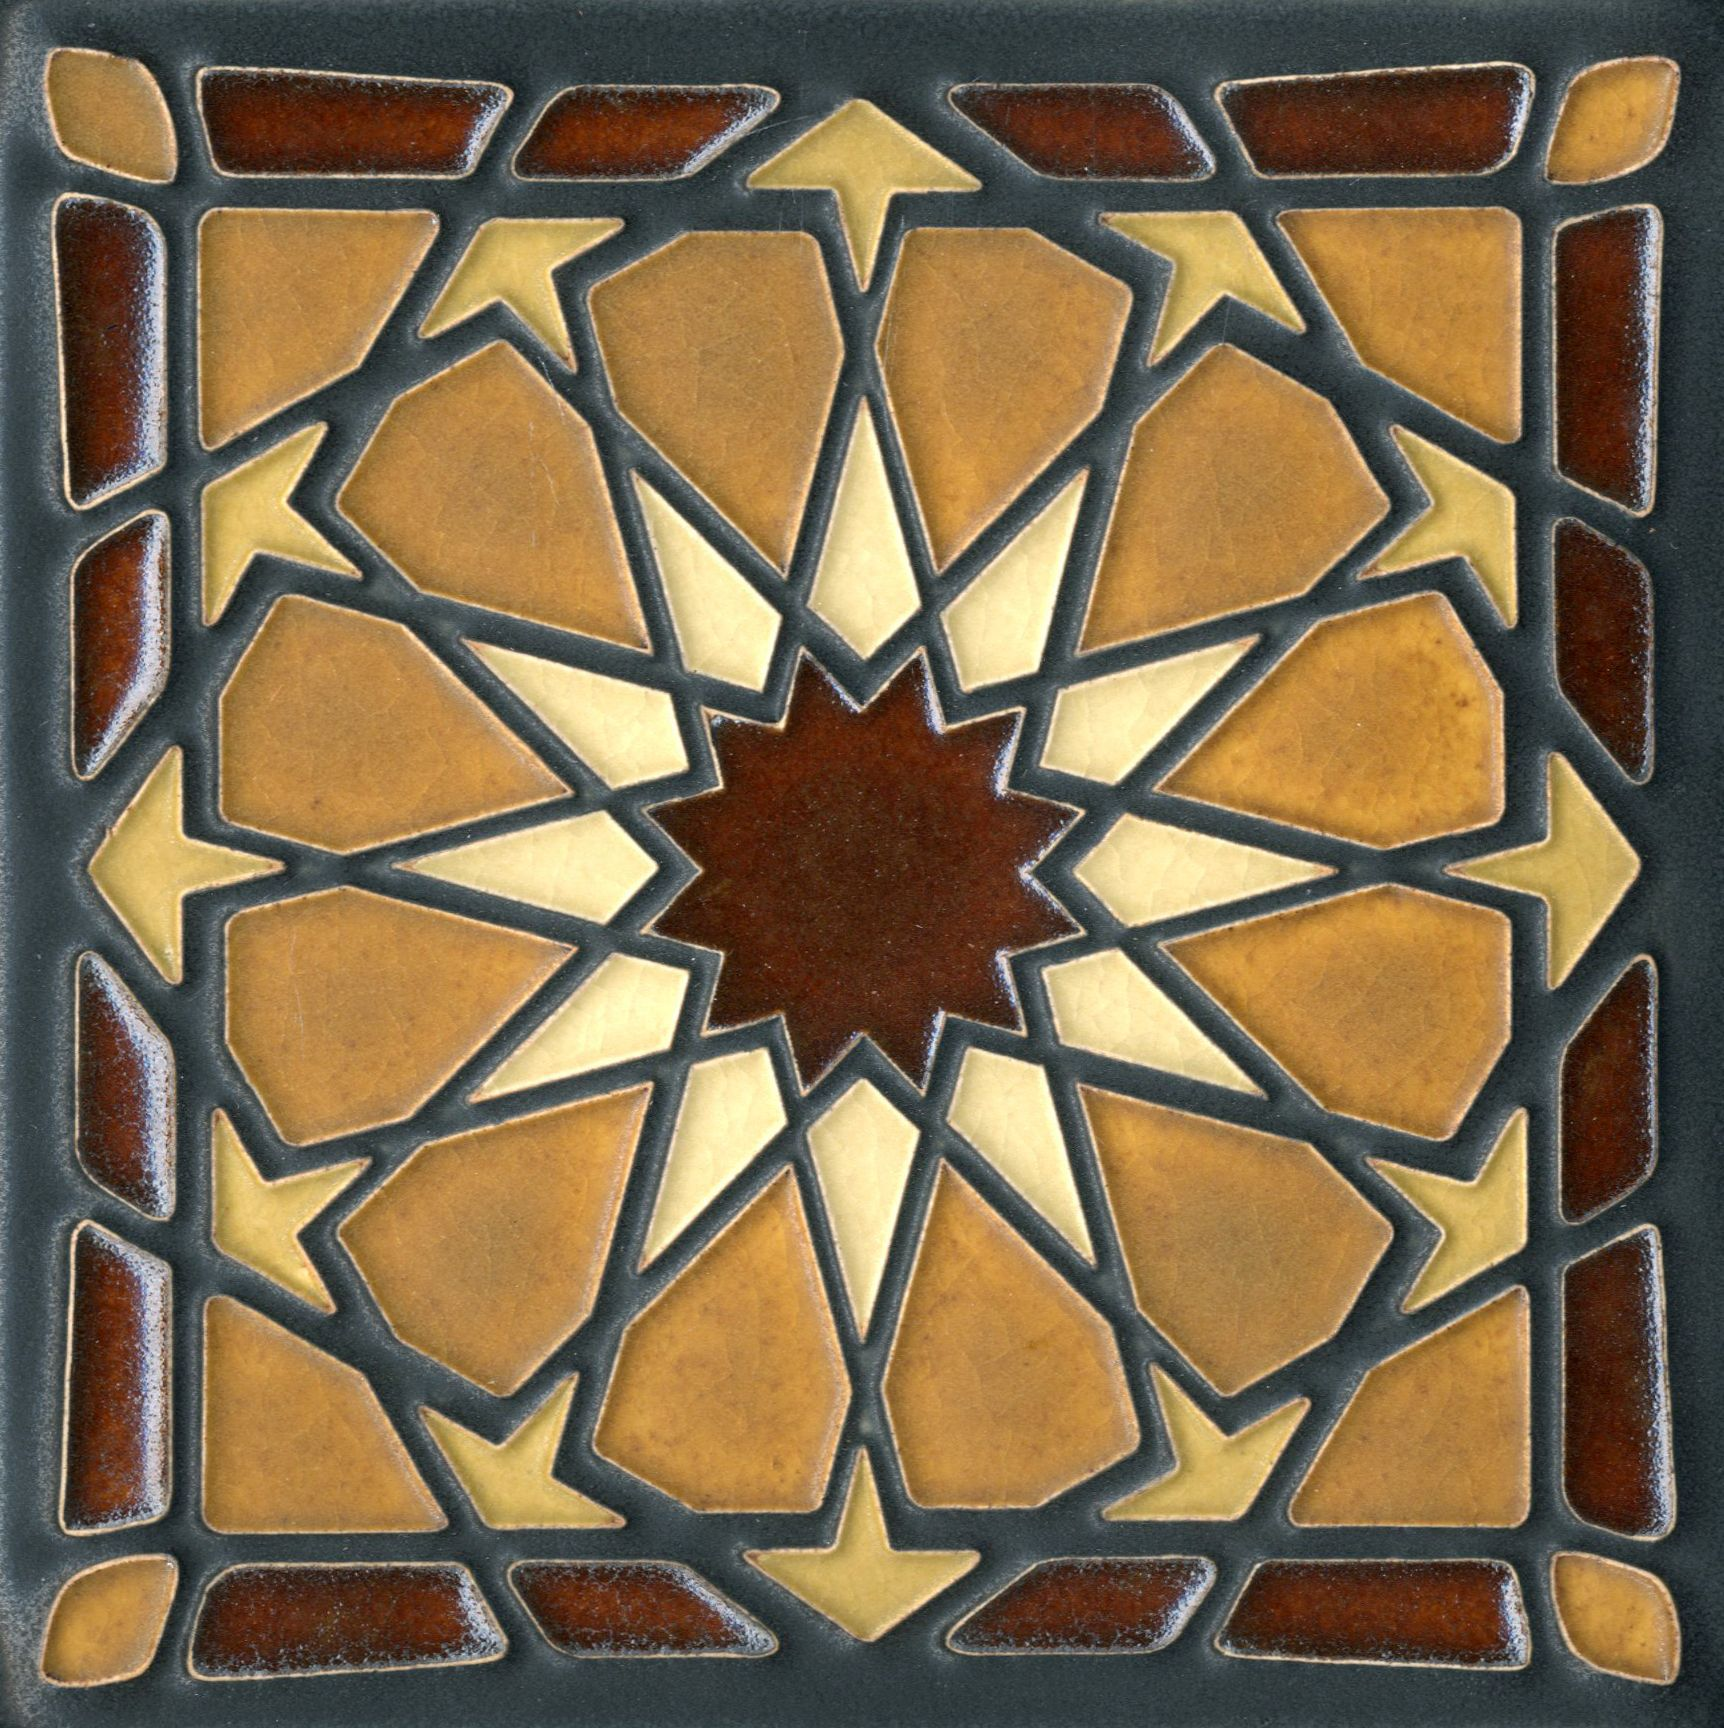 6x6 alhambra in brown by motawi tileworks art gcse pinterest 6x6 alhambra in brown by motawi tileworks doublecrazyfo Image collections